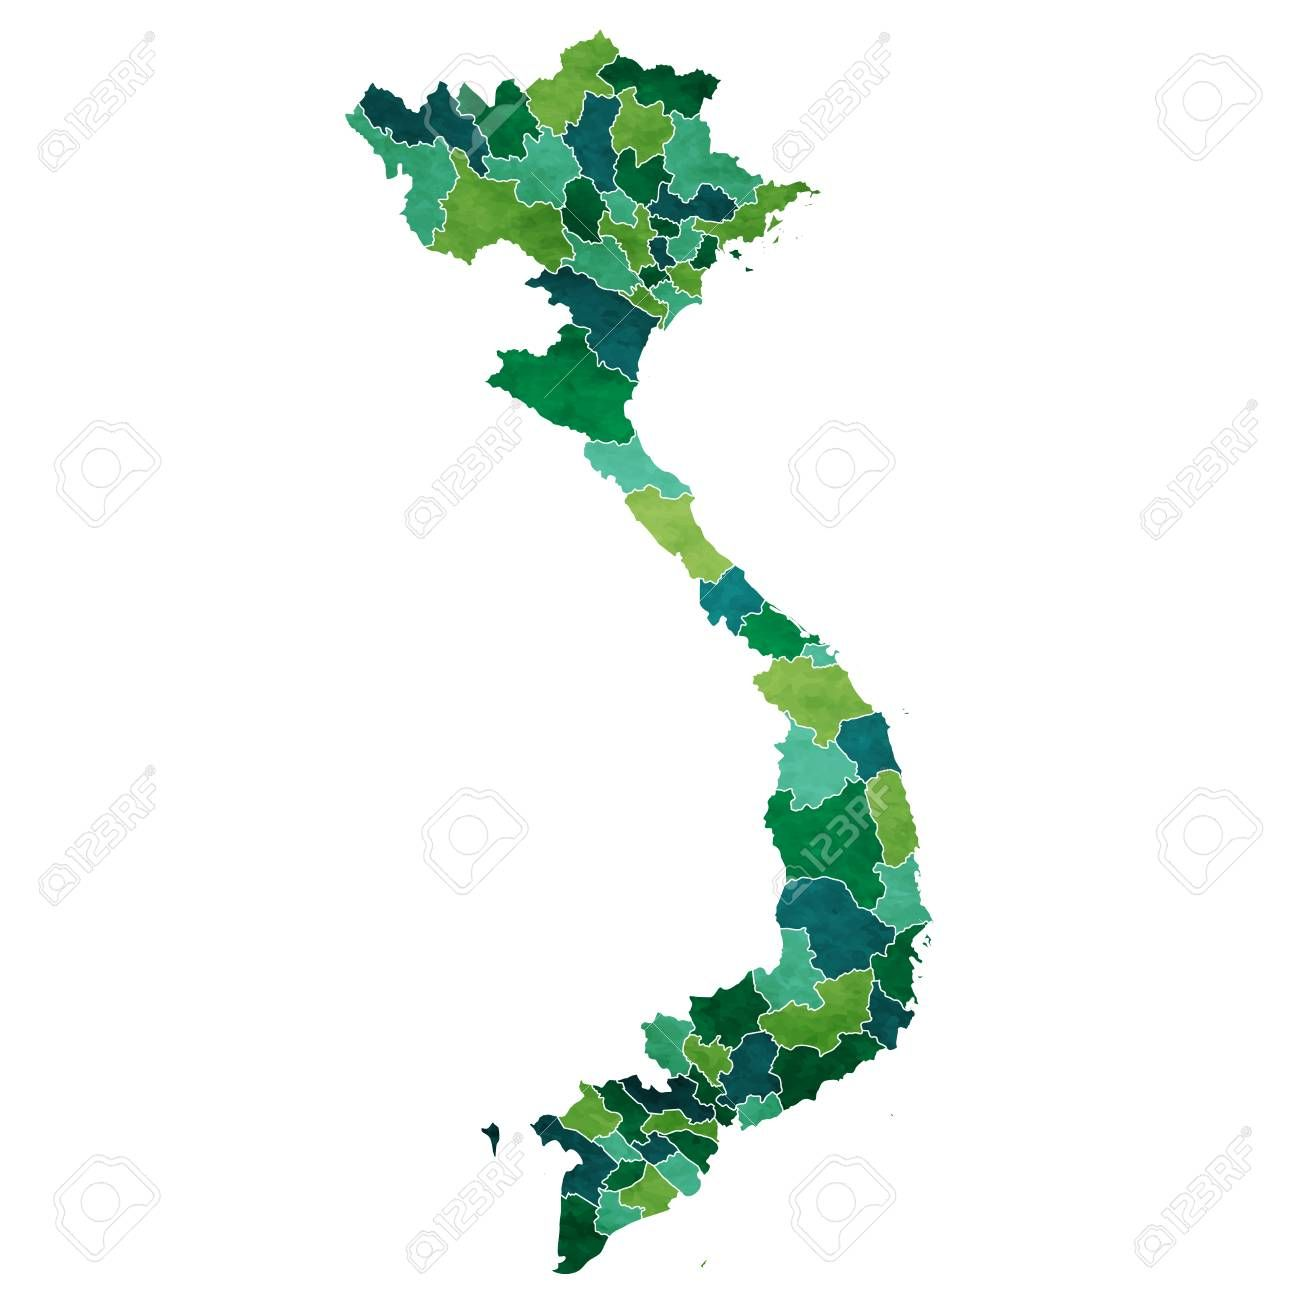 Vietnam World Map Country Icon Affiliate World Vietnam Map Icon Country Vietnam World Map World Map Graphic Design